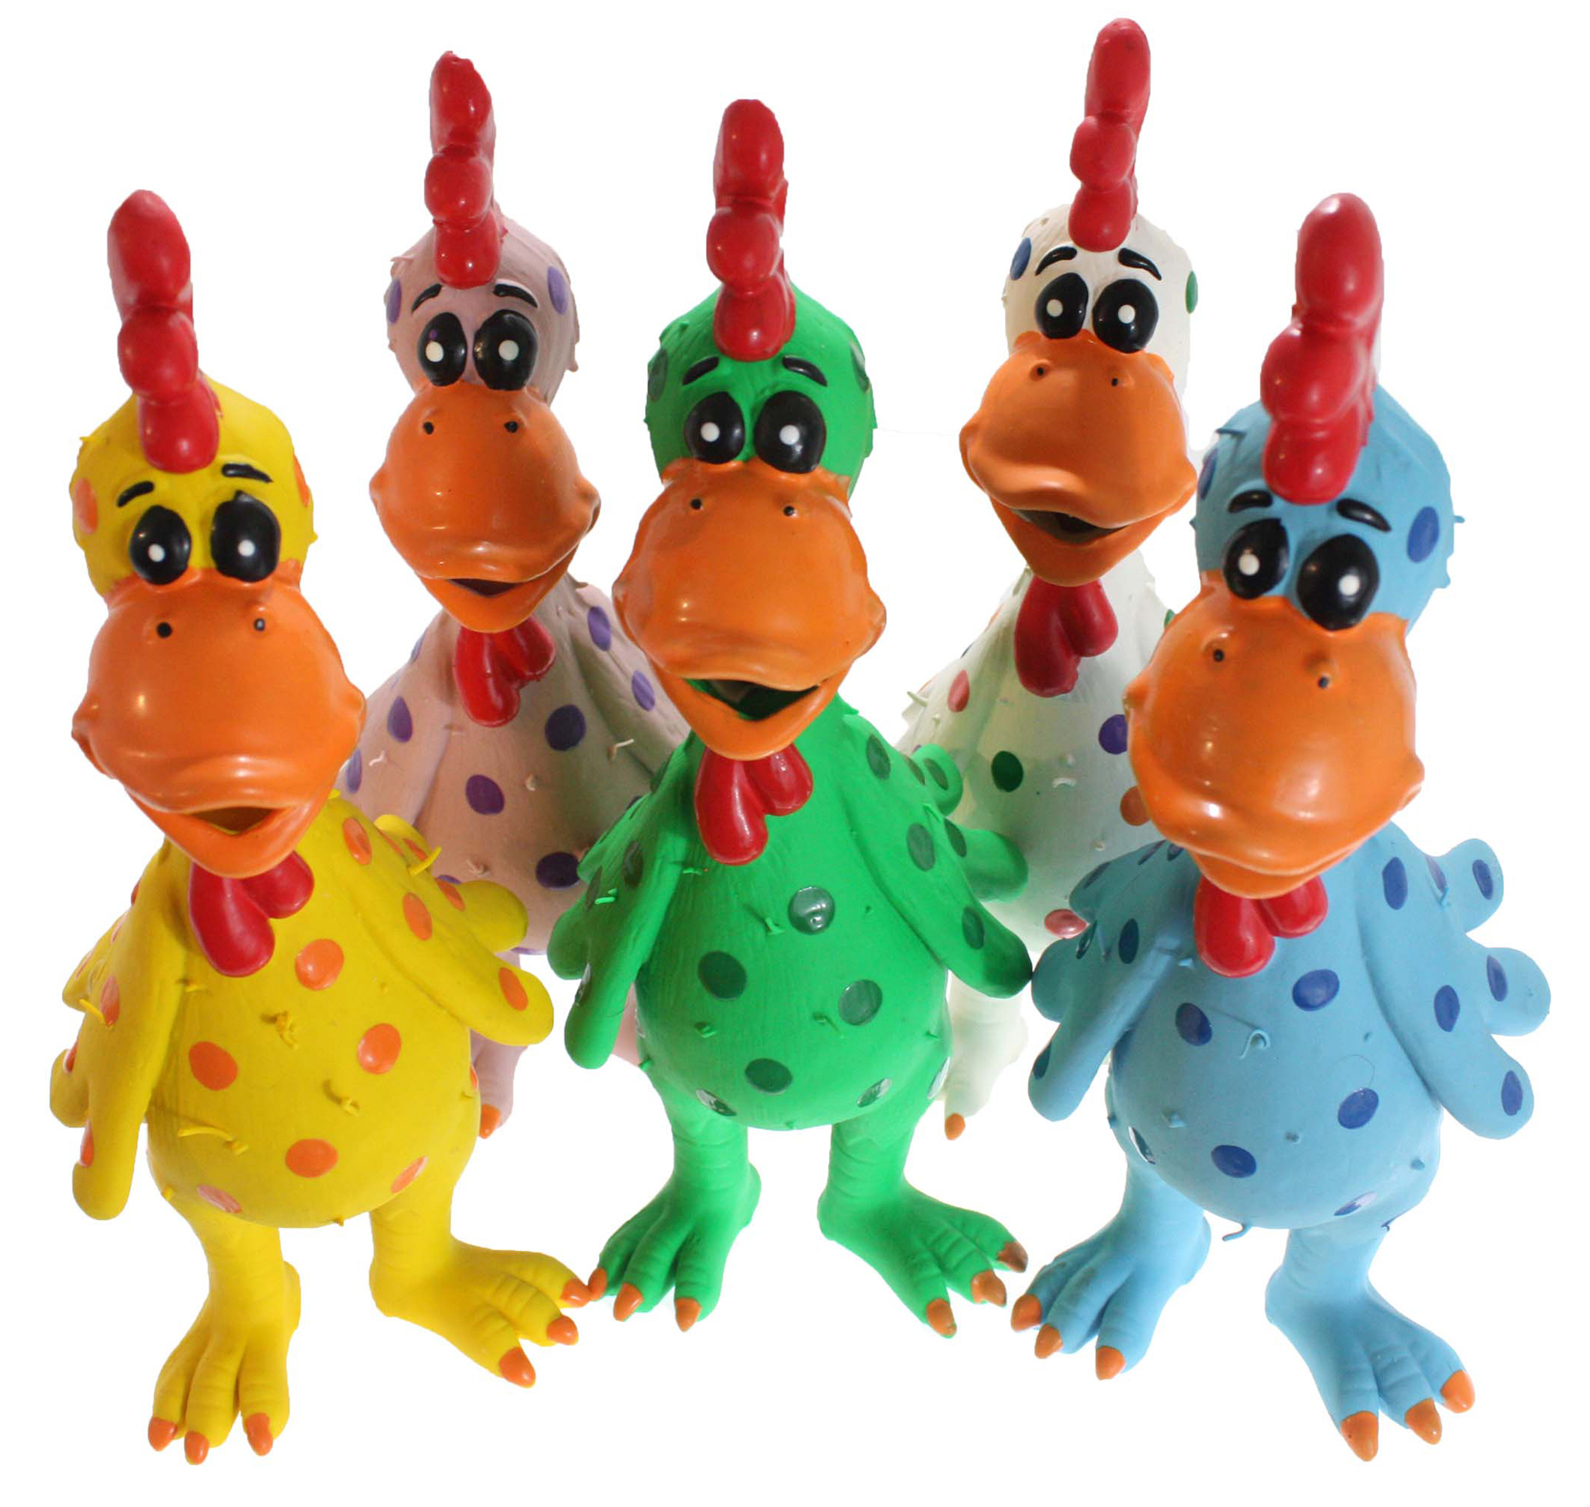 "610017 Globkens, Latex Chicken, Large, 11.5"", Assorted Colors"